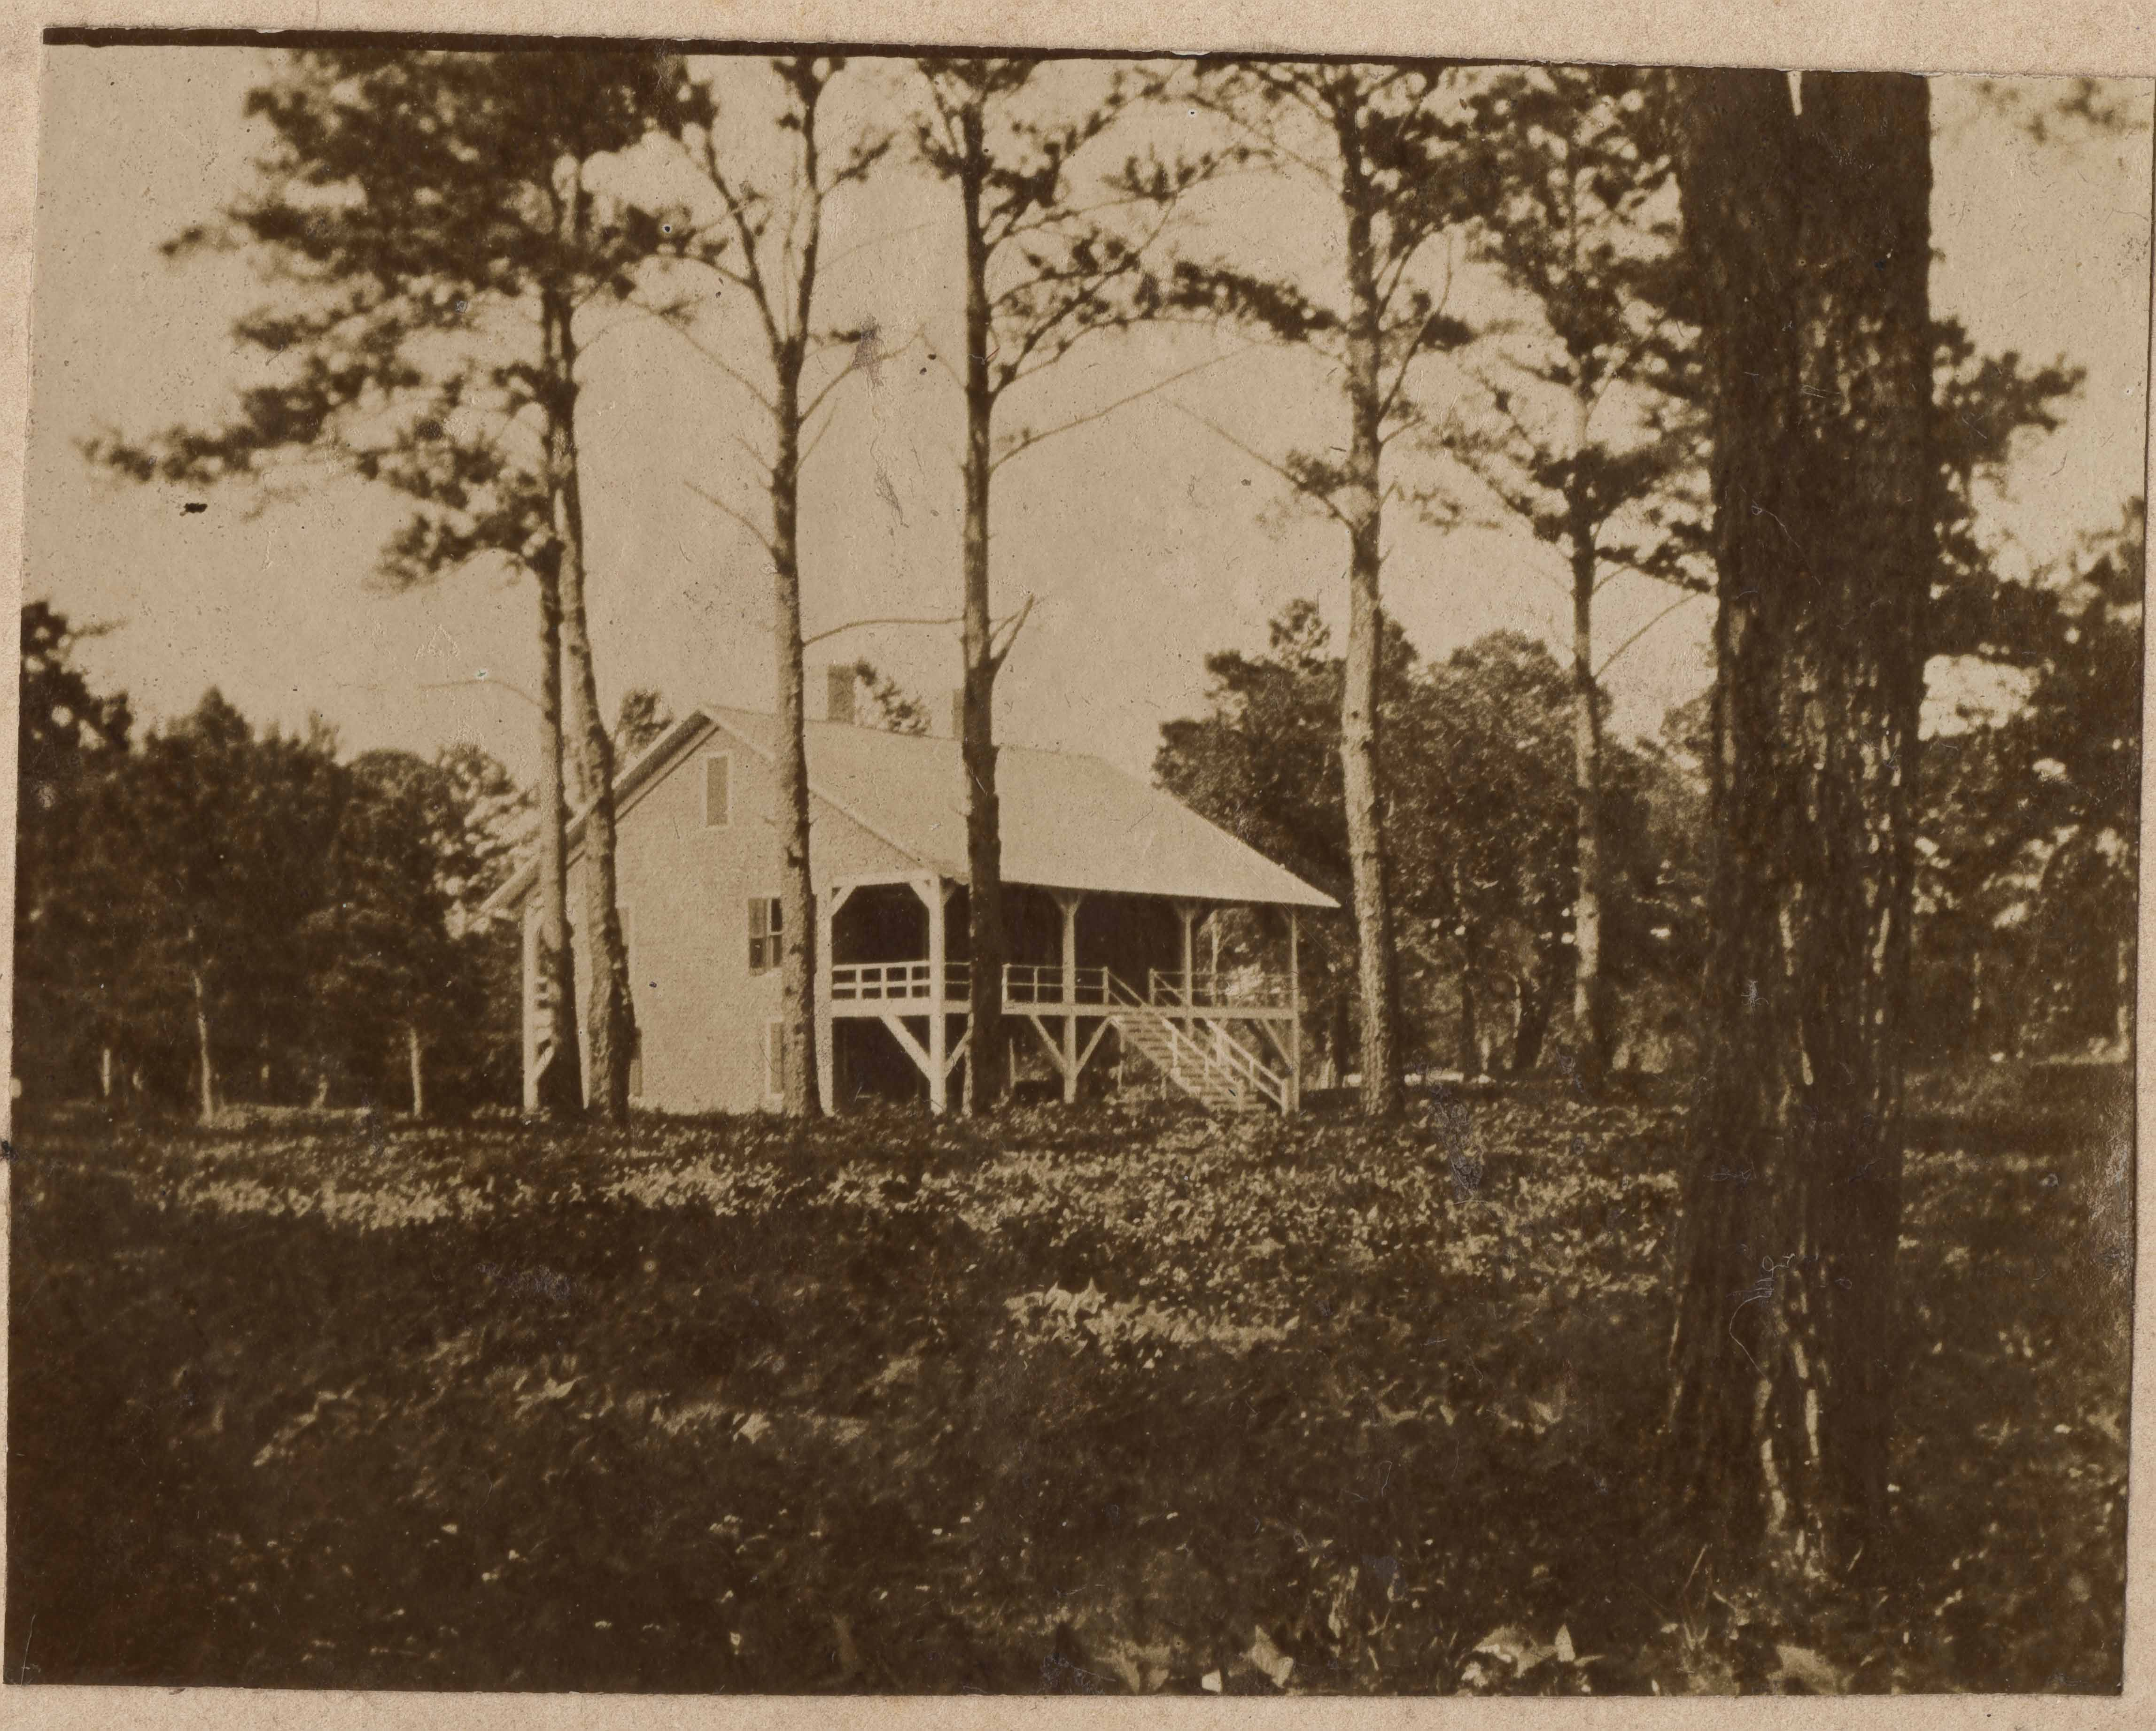 View of Main House on Halls Island from the left